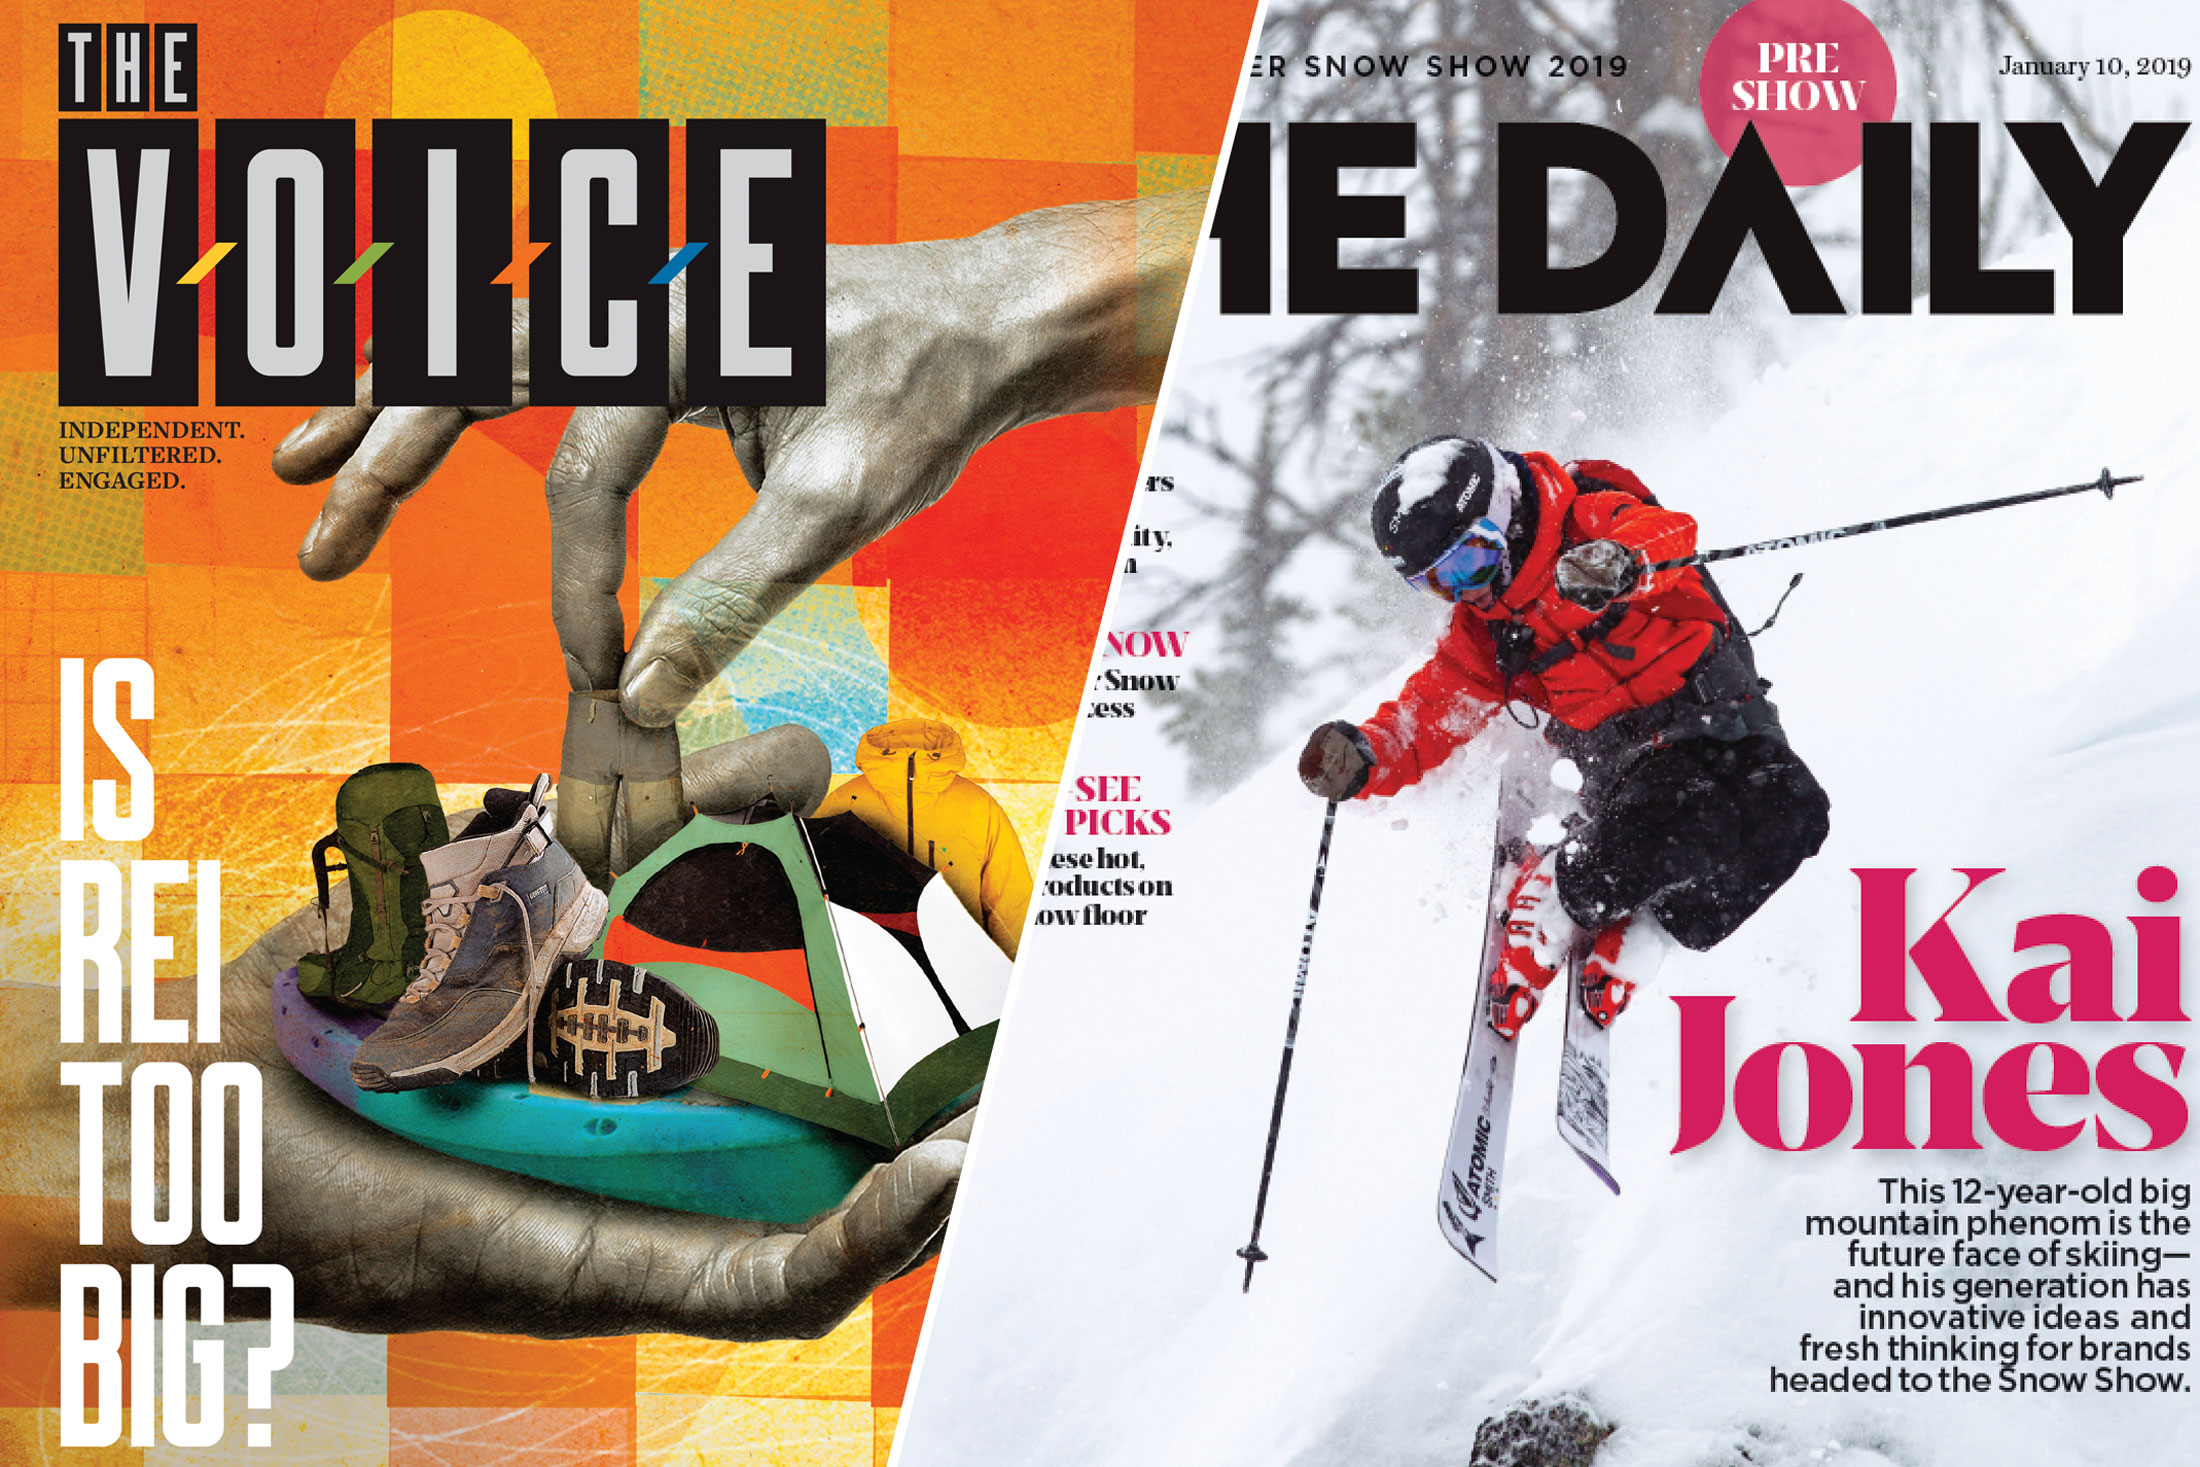 The Daily The Voice Outdoor Retailer